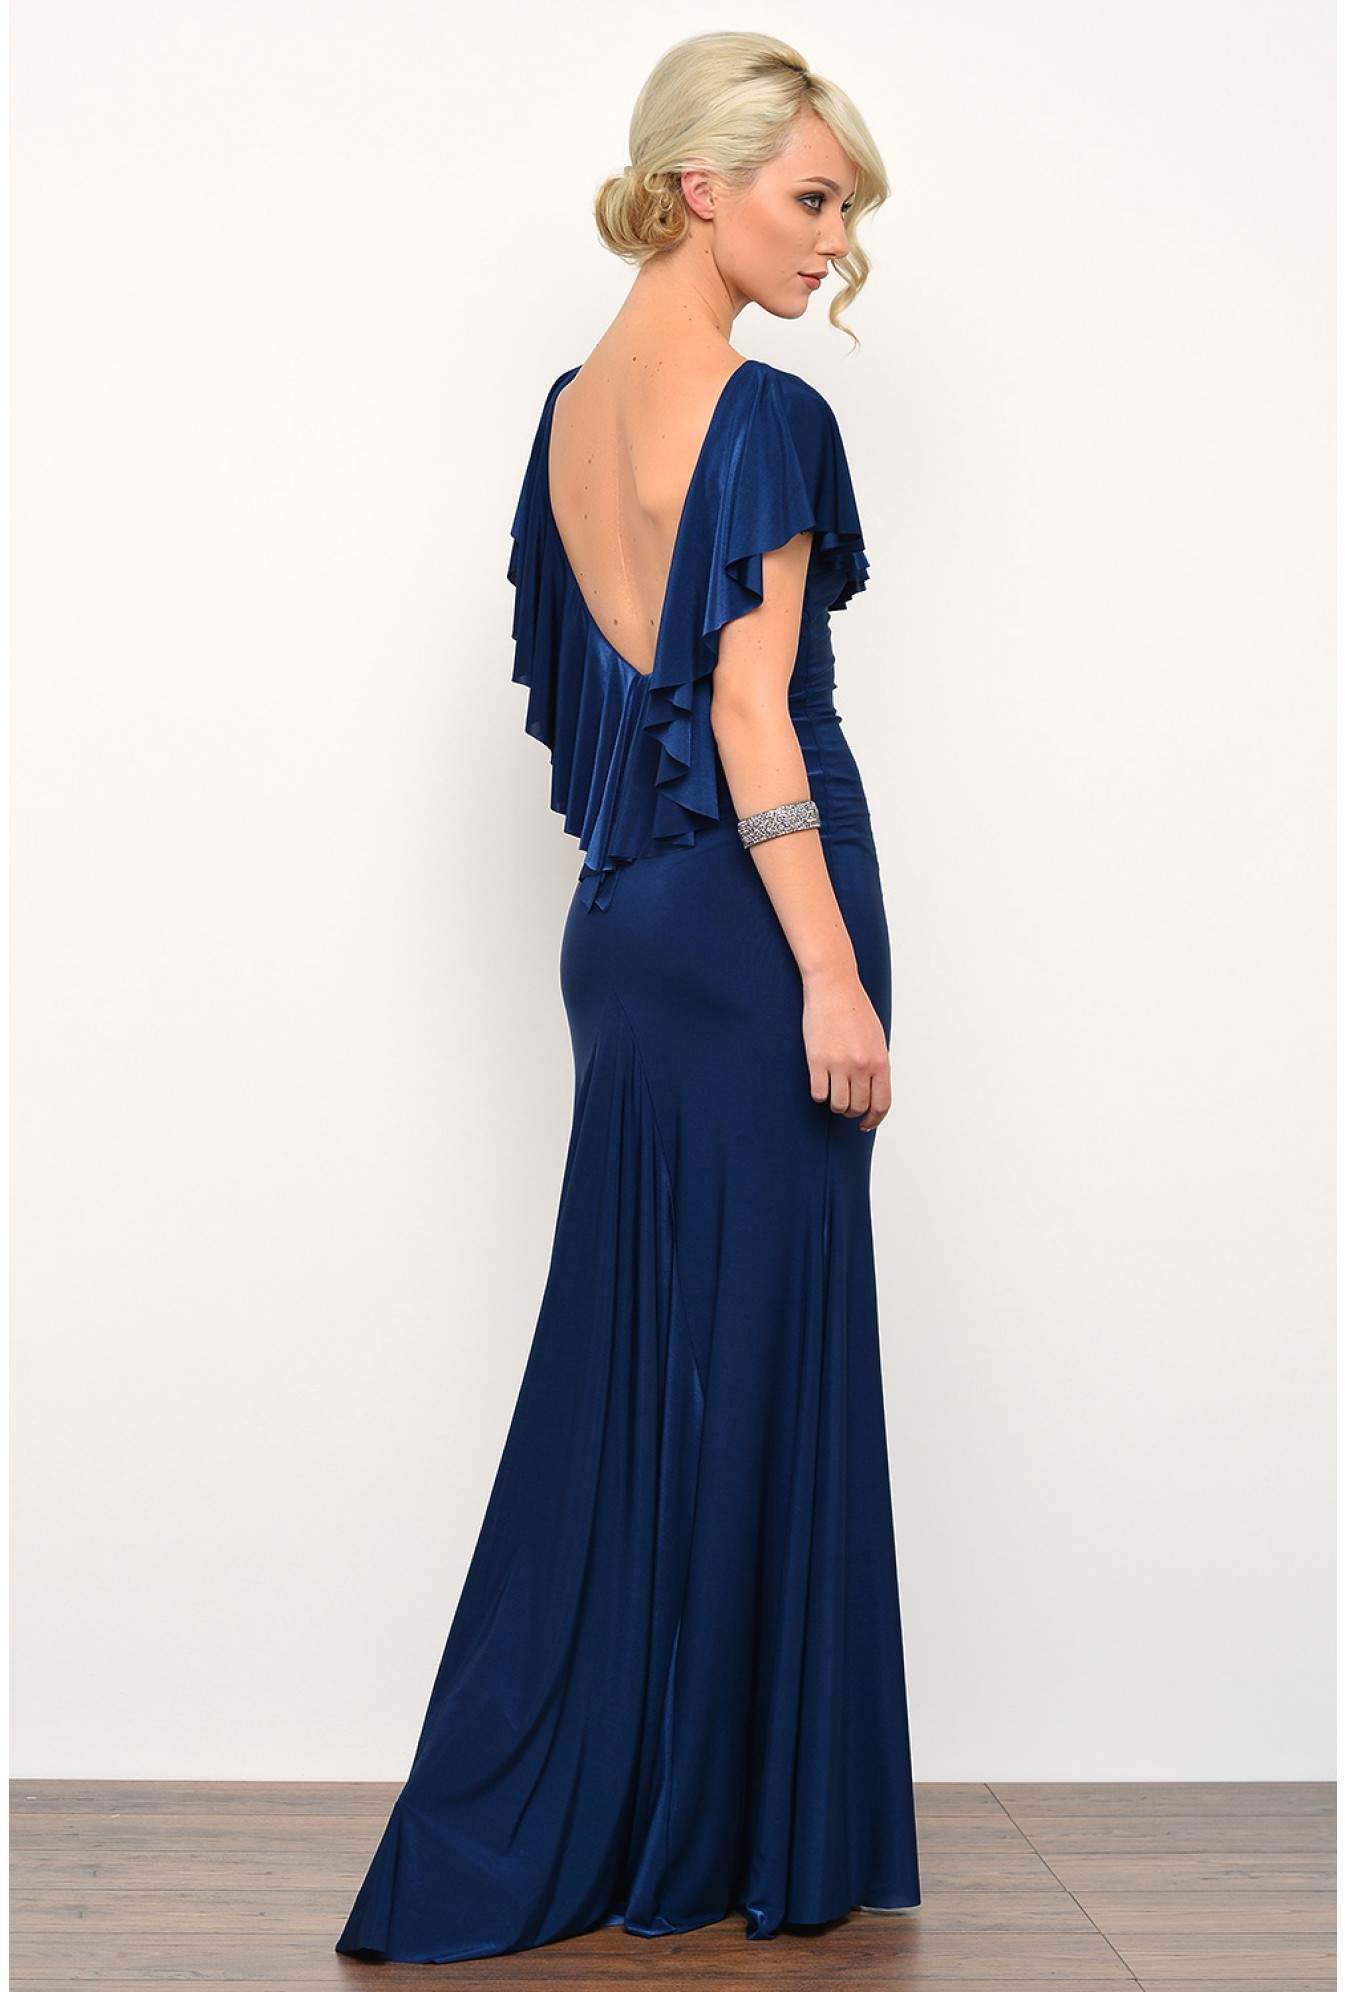 f24295521aac3 Paula Open Back Ruffle Maxi Dress in Navy